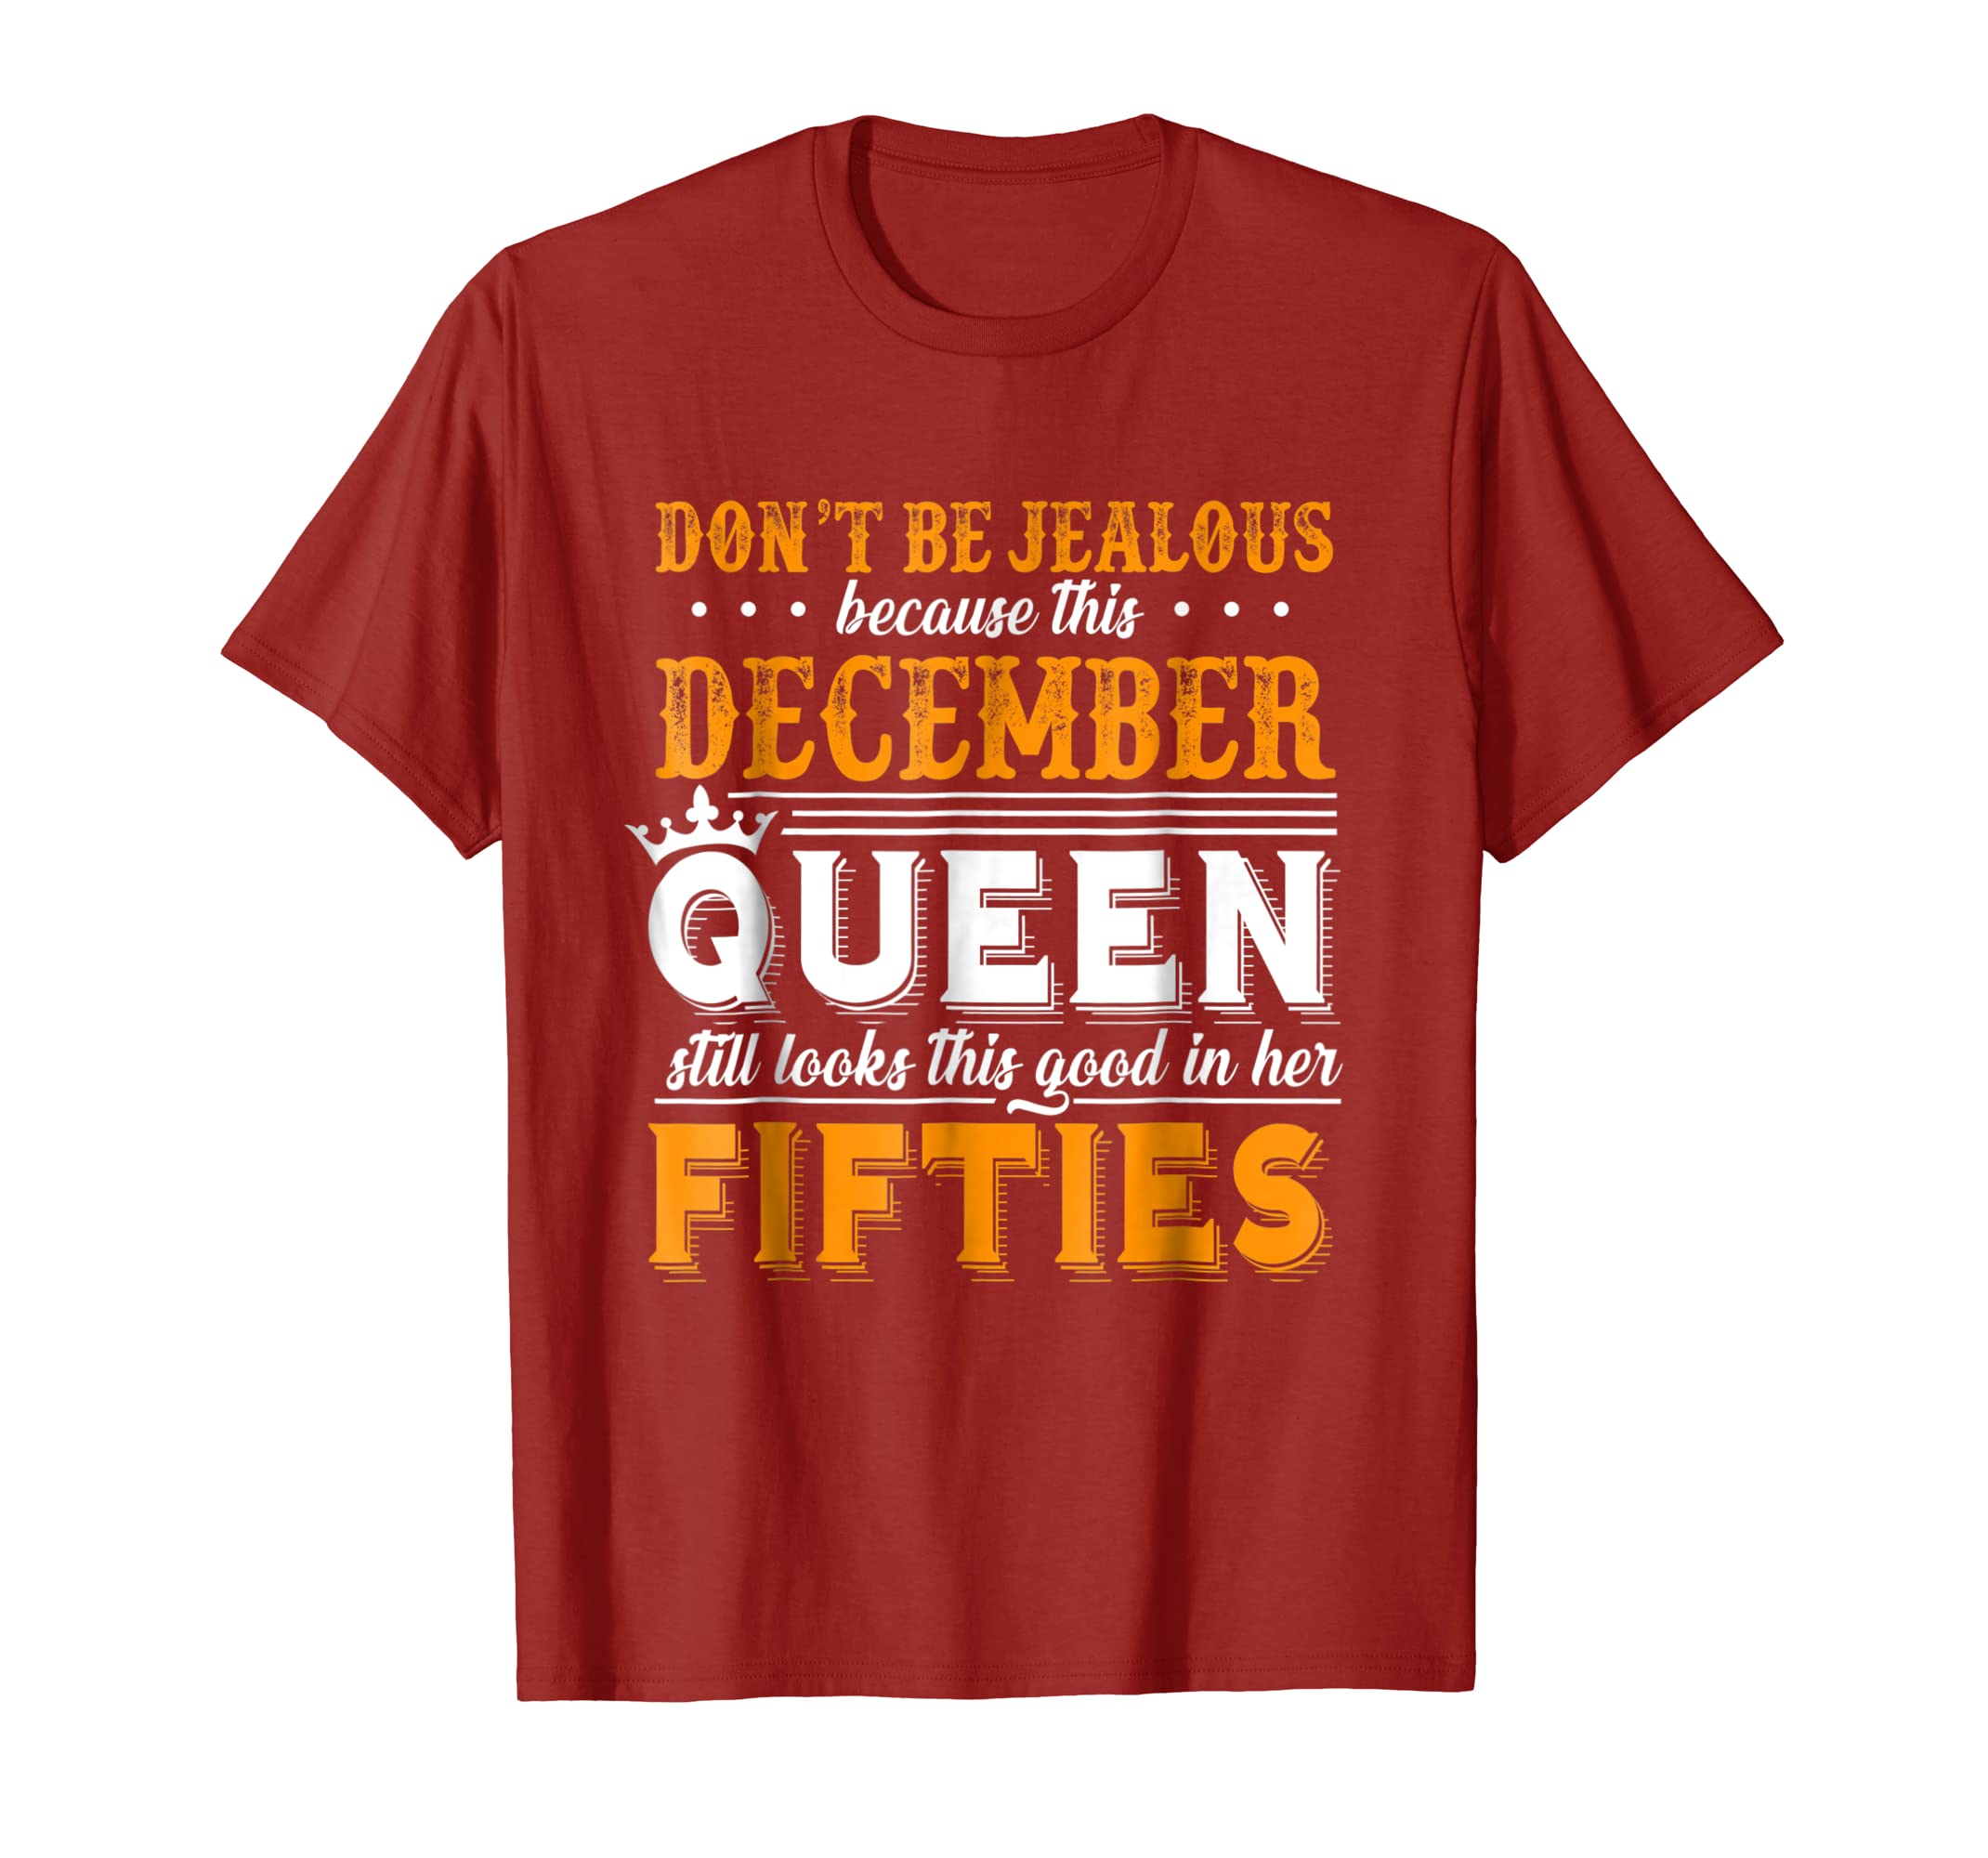 10c6c494df Amazon.com: Don't Be Jealous Because This December Queen In Her Fifties:  Clothing